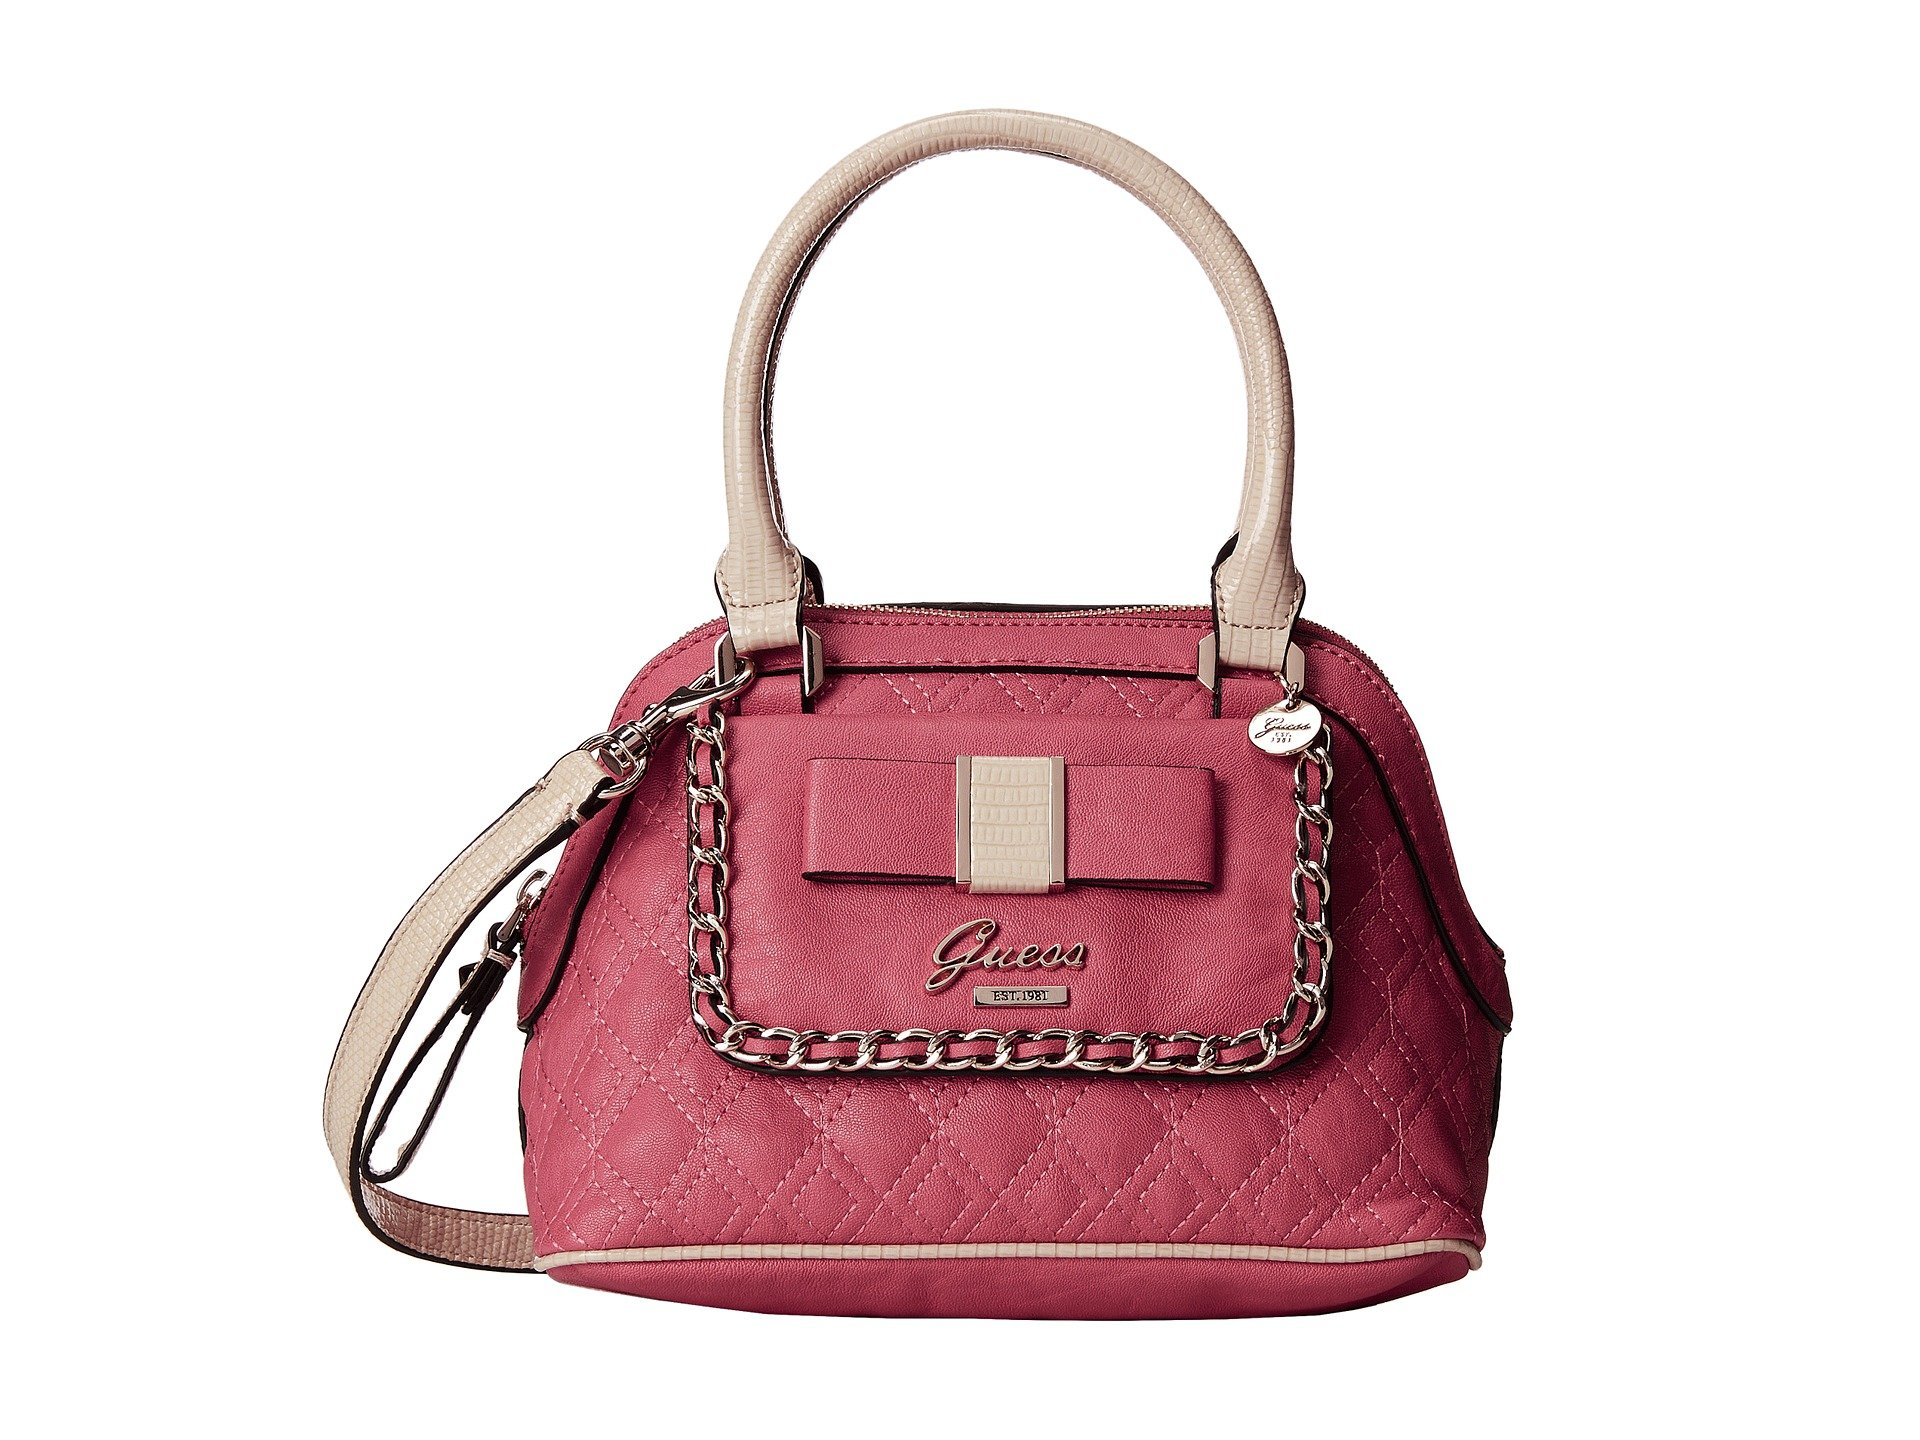 GUESS Women's Dolled Up Passion Satchel